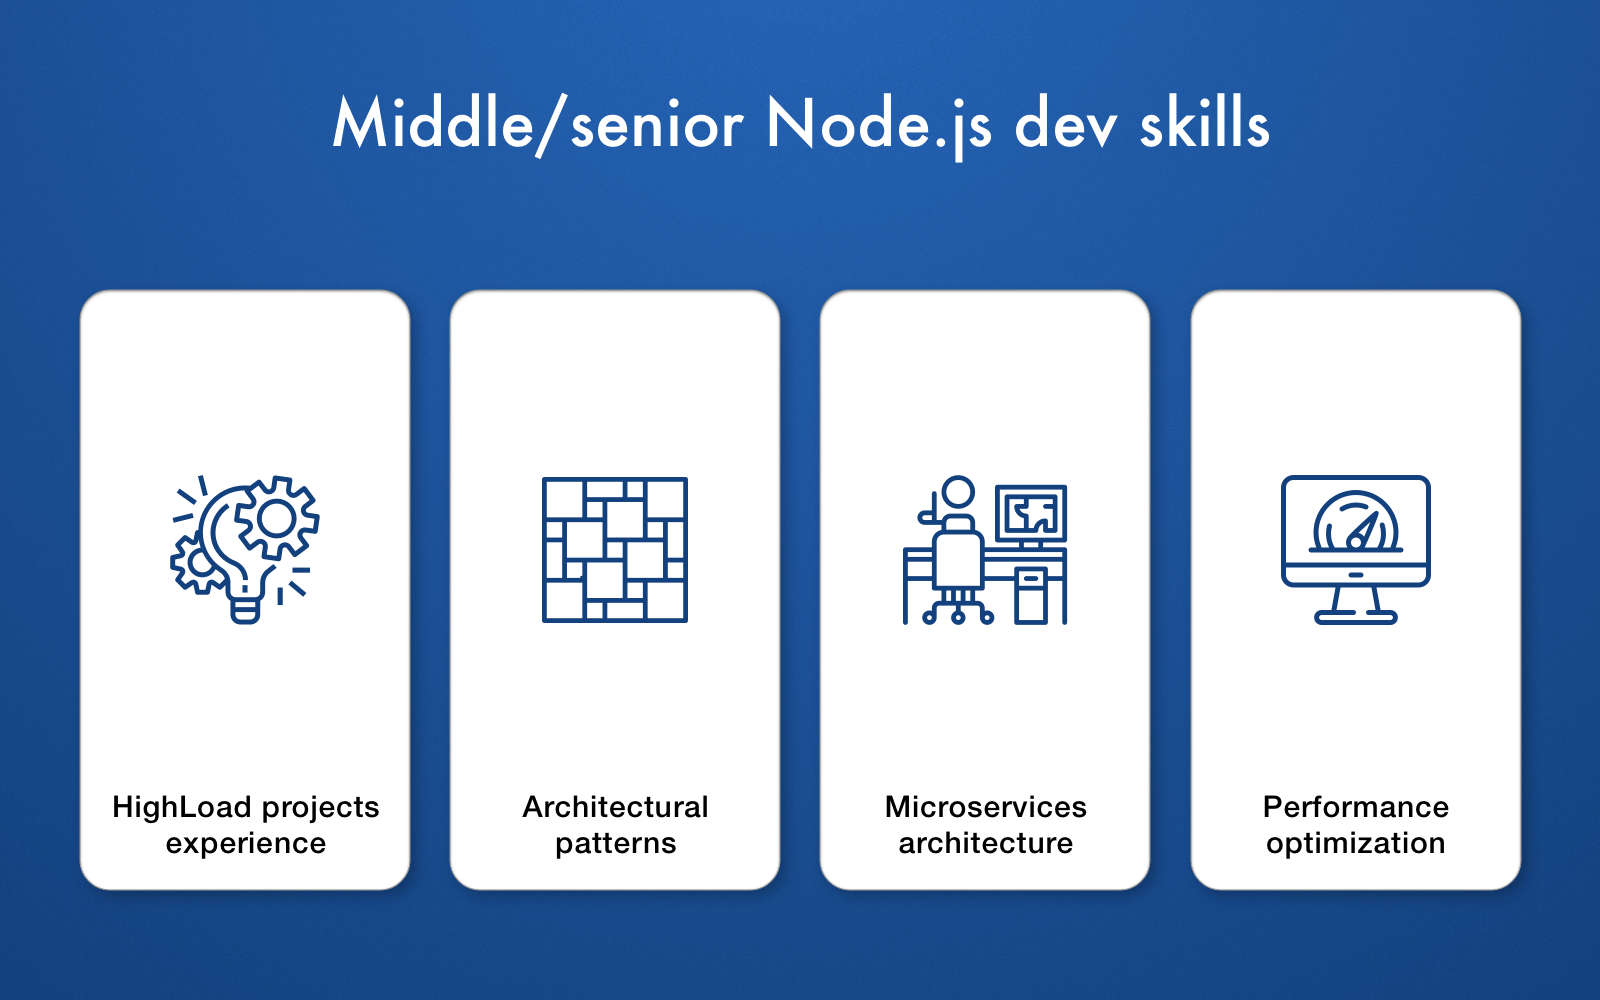 Middle/Senior Node.js Dev Skills